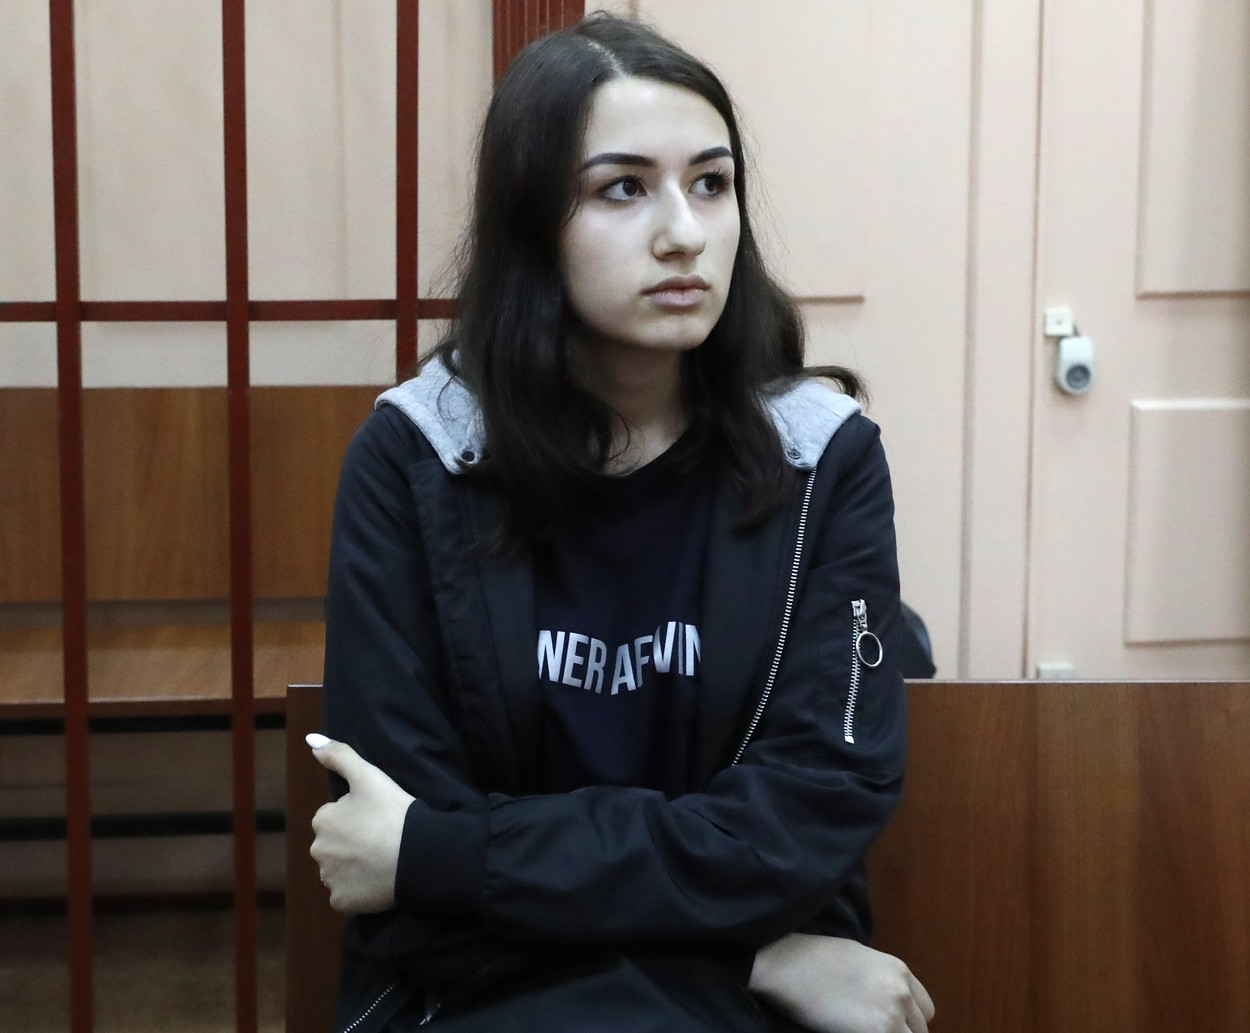 MOSCOW, RUSSIA - JUNE 26, 2019: Krestina, one of the three Khachaturyan teen sisters charged with their father's murder, attends a hearing at Moscow's Basmanny District Court, a motion filed to extend their house arrest. Mikhail Khachaturyan, 57, was killed by his three daughters Maria, Angelina and Krestina, 17, 18 and 19 respectively, in their flat on July 27, 2018. Sergei Karpukhin/TASS, Image: 451611948, License: Rights-managed, Restrictions: , Model Release: no, Credit line: Sergei Karpukhin / TASS / Profimedia